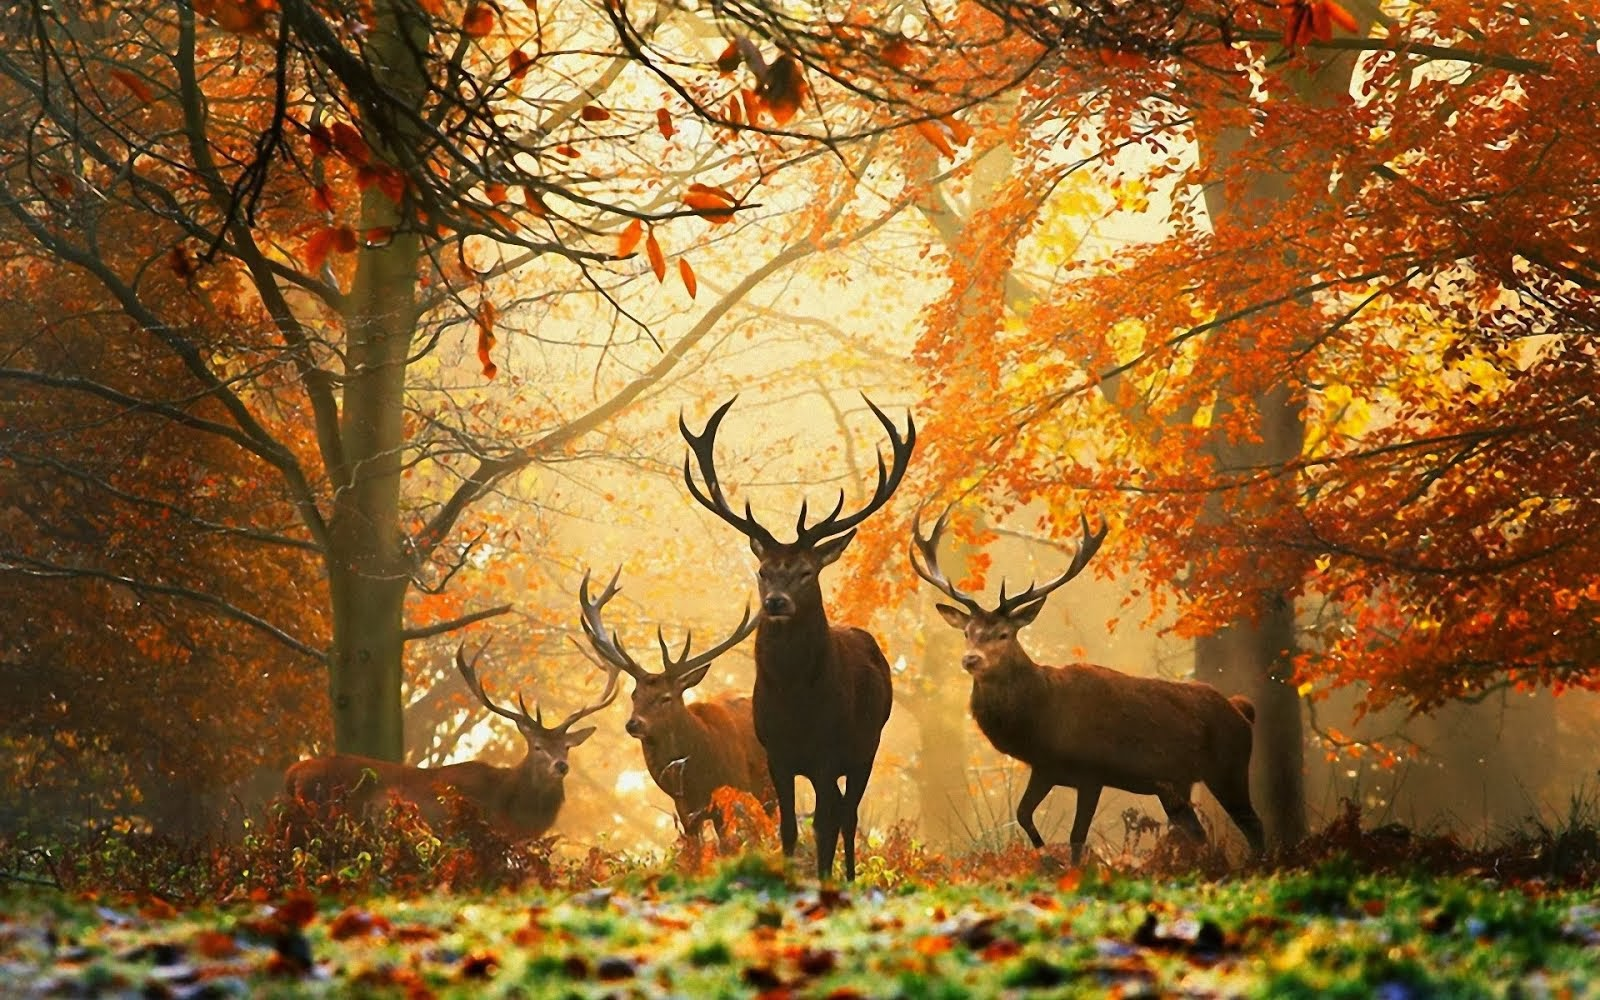 Elks in the autumn forest